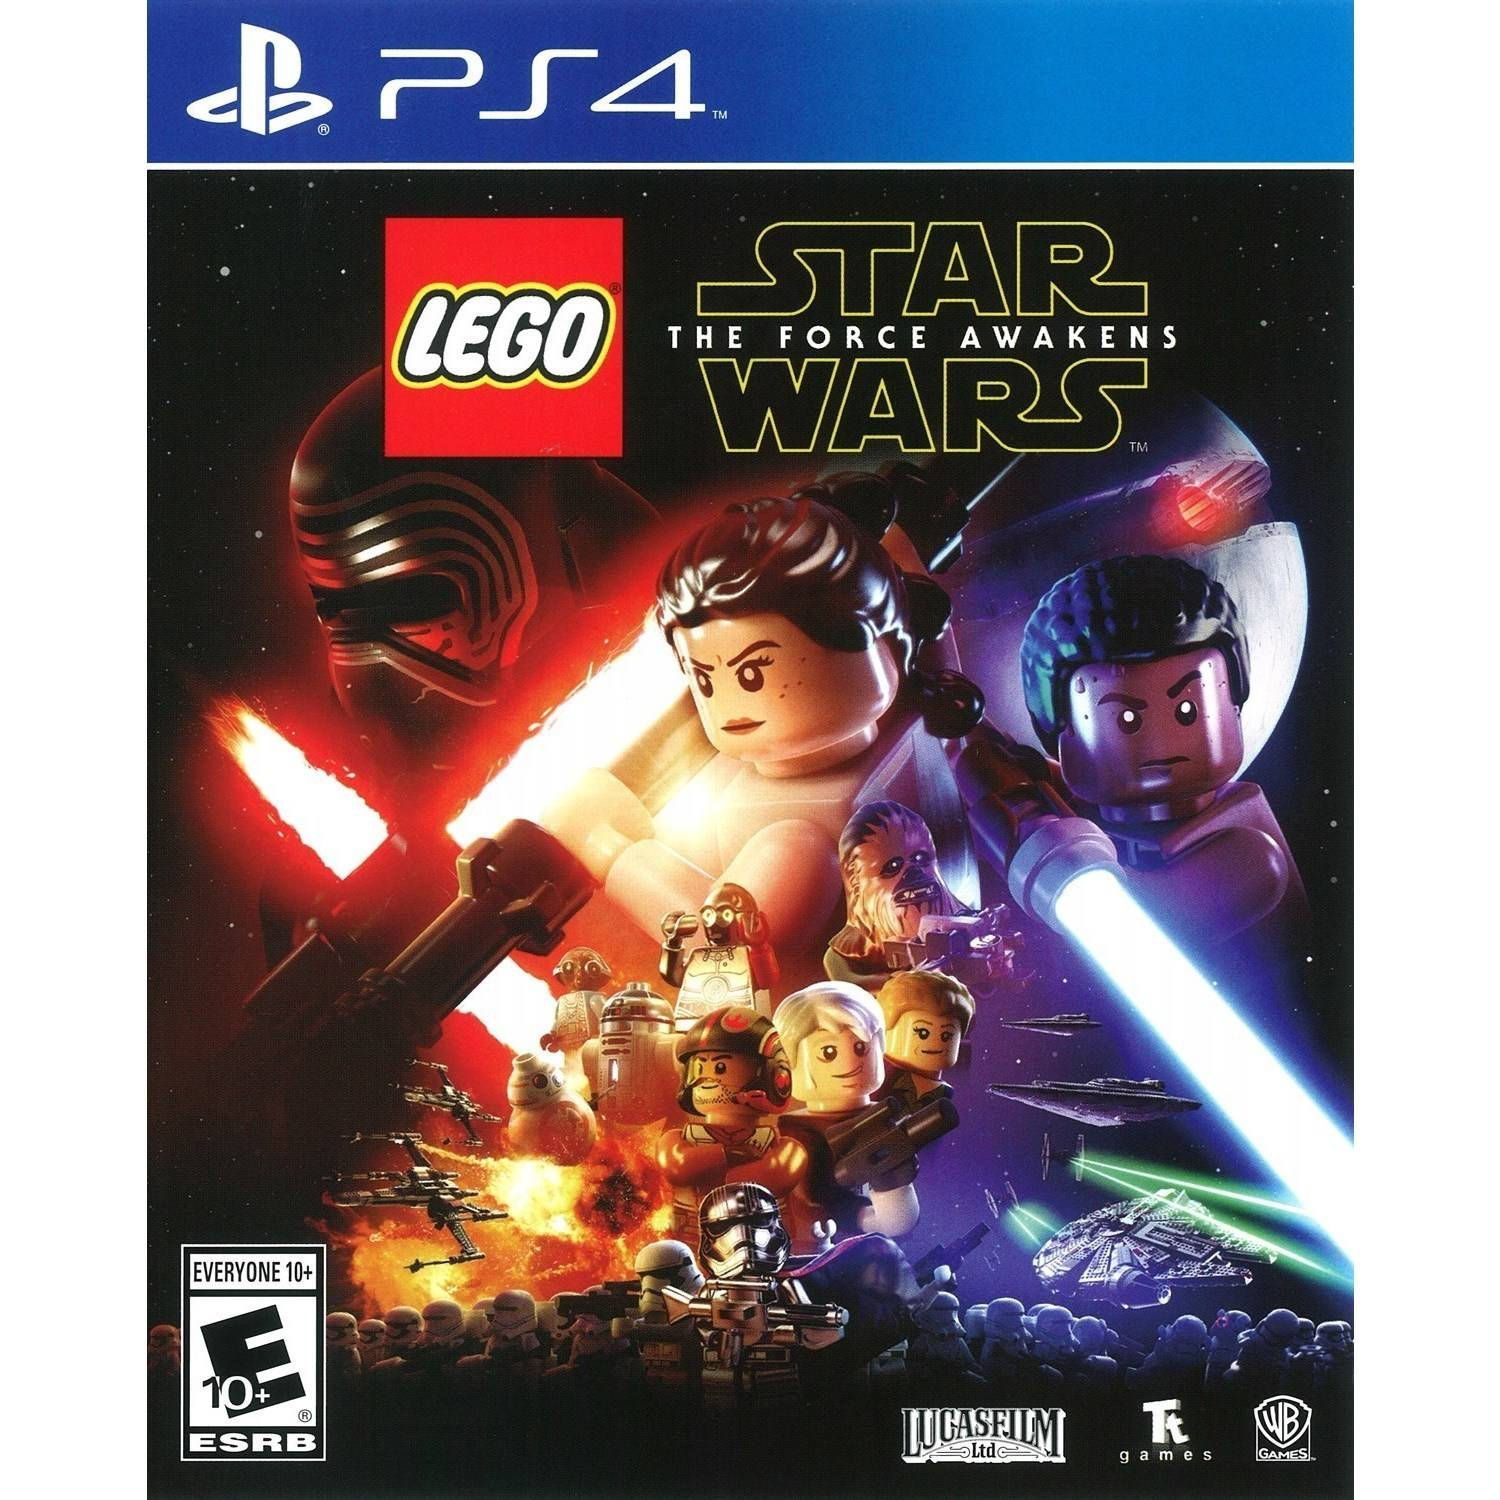 Lego Star Wars The Force Awakens - Pre-Owned (PS4)